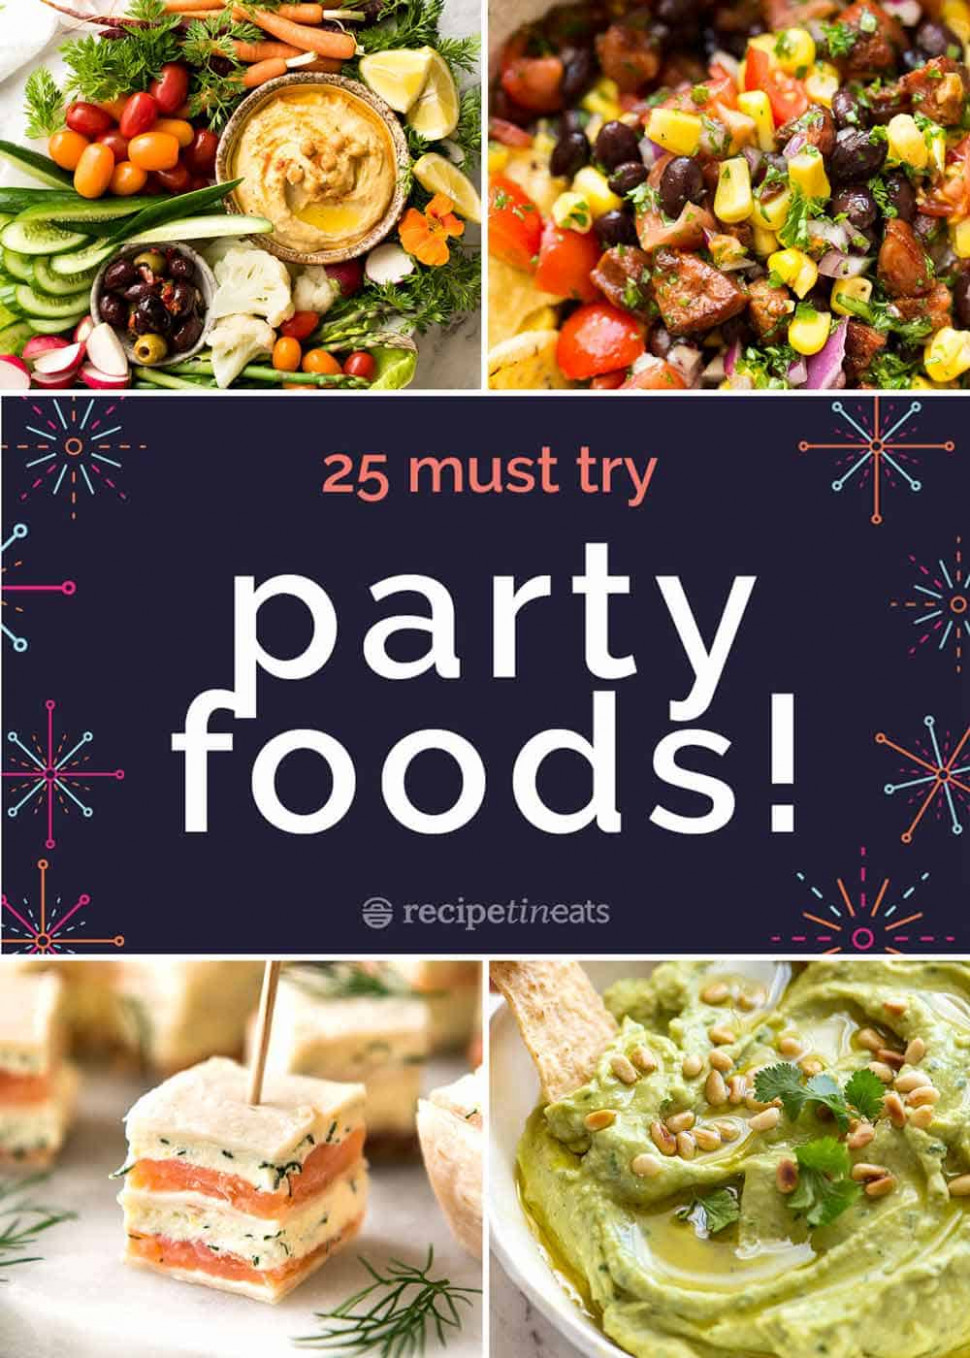 11 BEST Party Food Recipes! - healthy recipes yummy